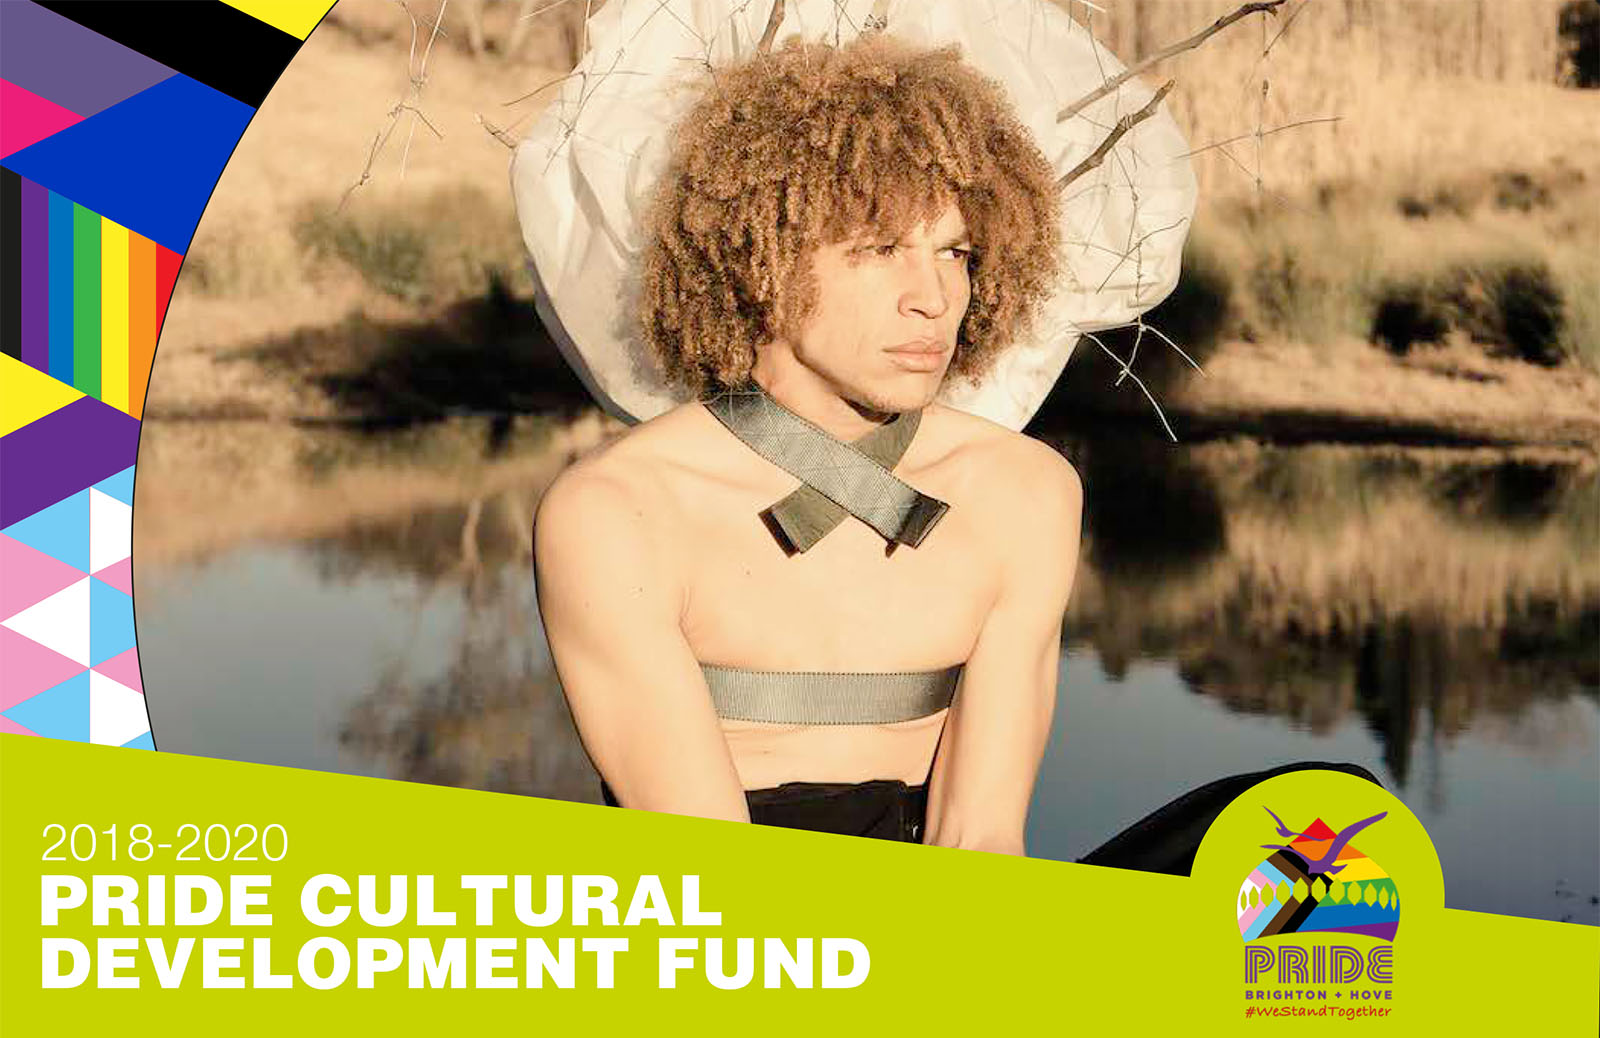 Pride Cultural Development Fund: The First 3 Years